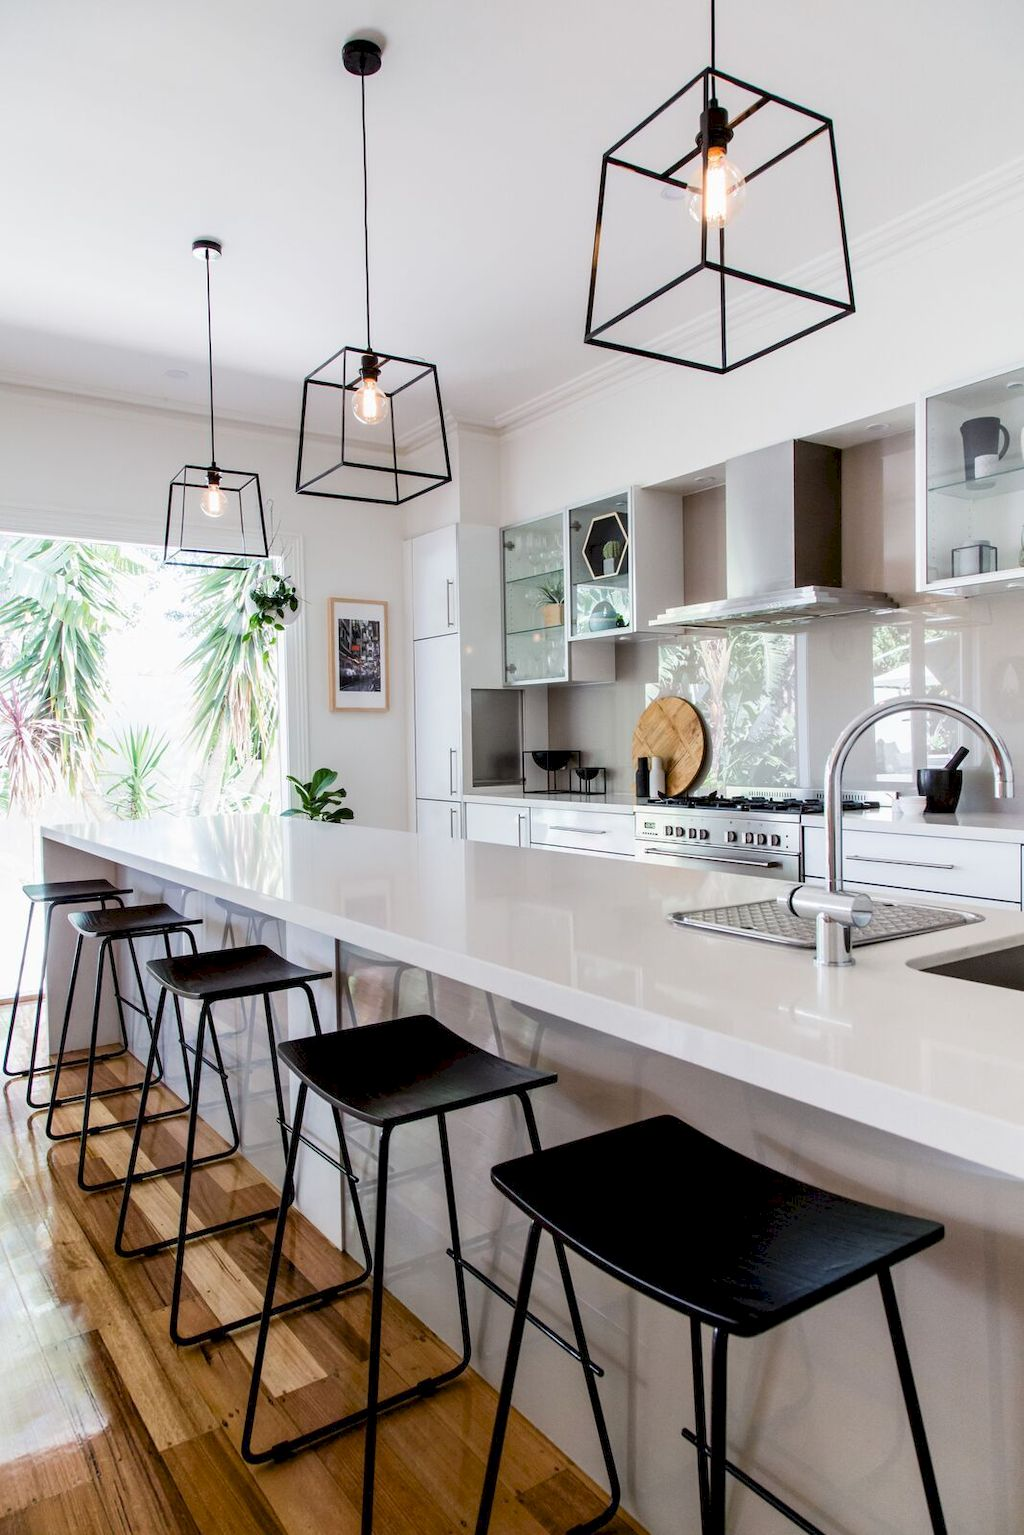 Decorative Kitchen Pendant Design with Modern and Classic Concept Part 22